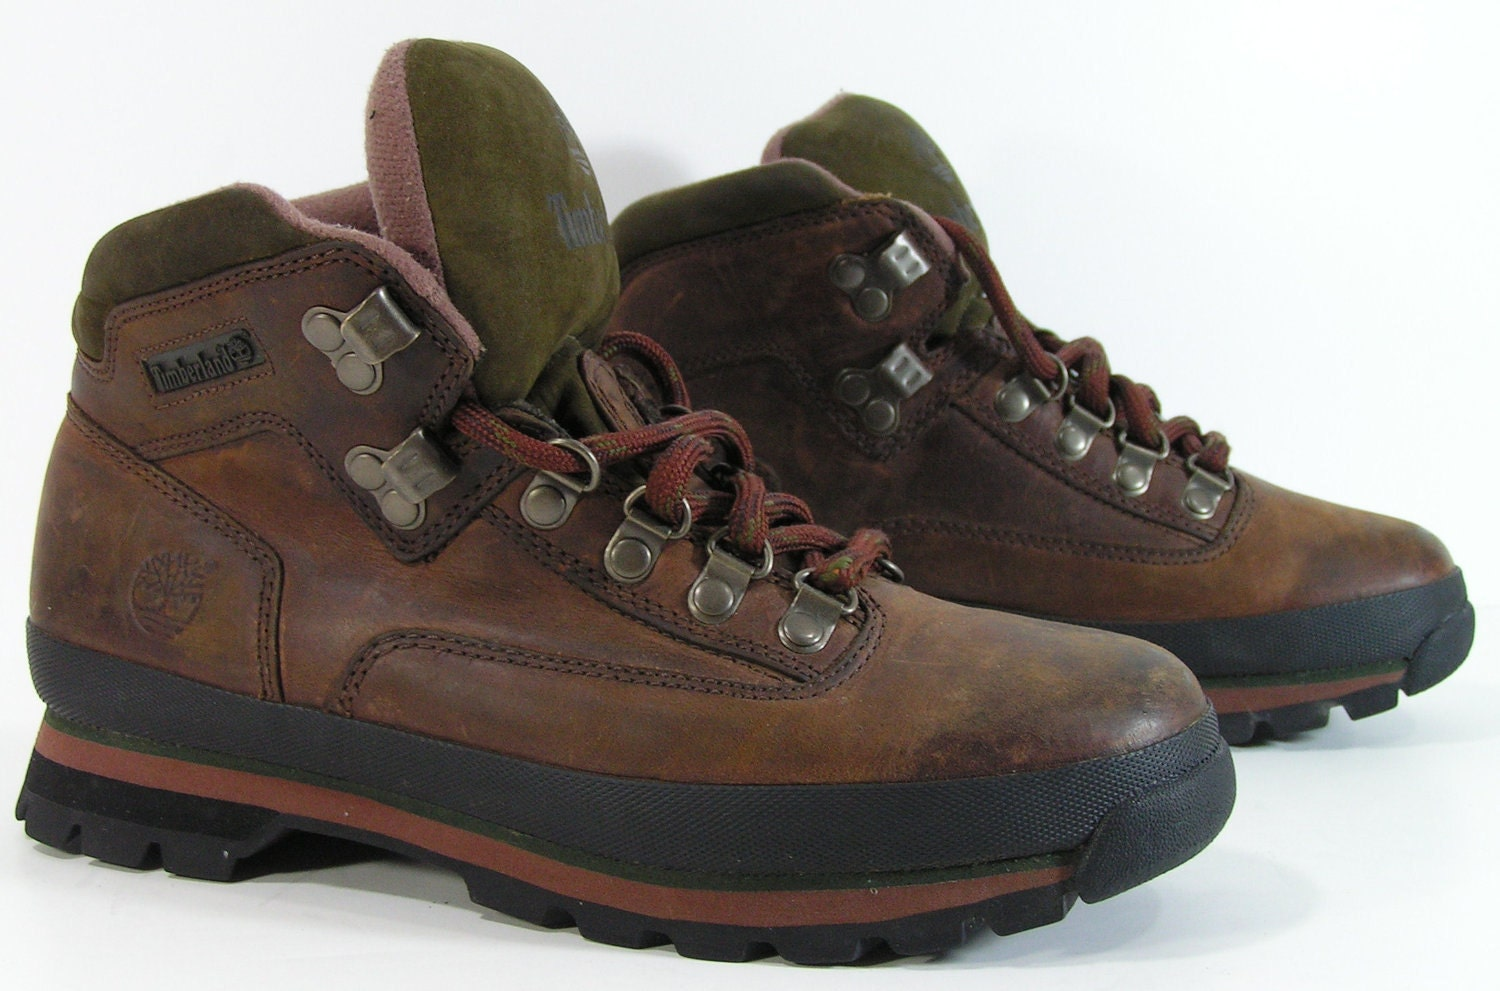 Excellent Timberland Eurohiker Hiking Boots (For Women) 2289M - Save 40%